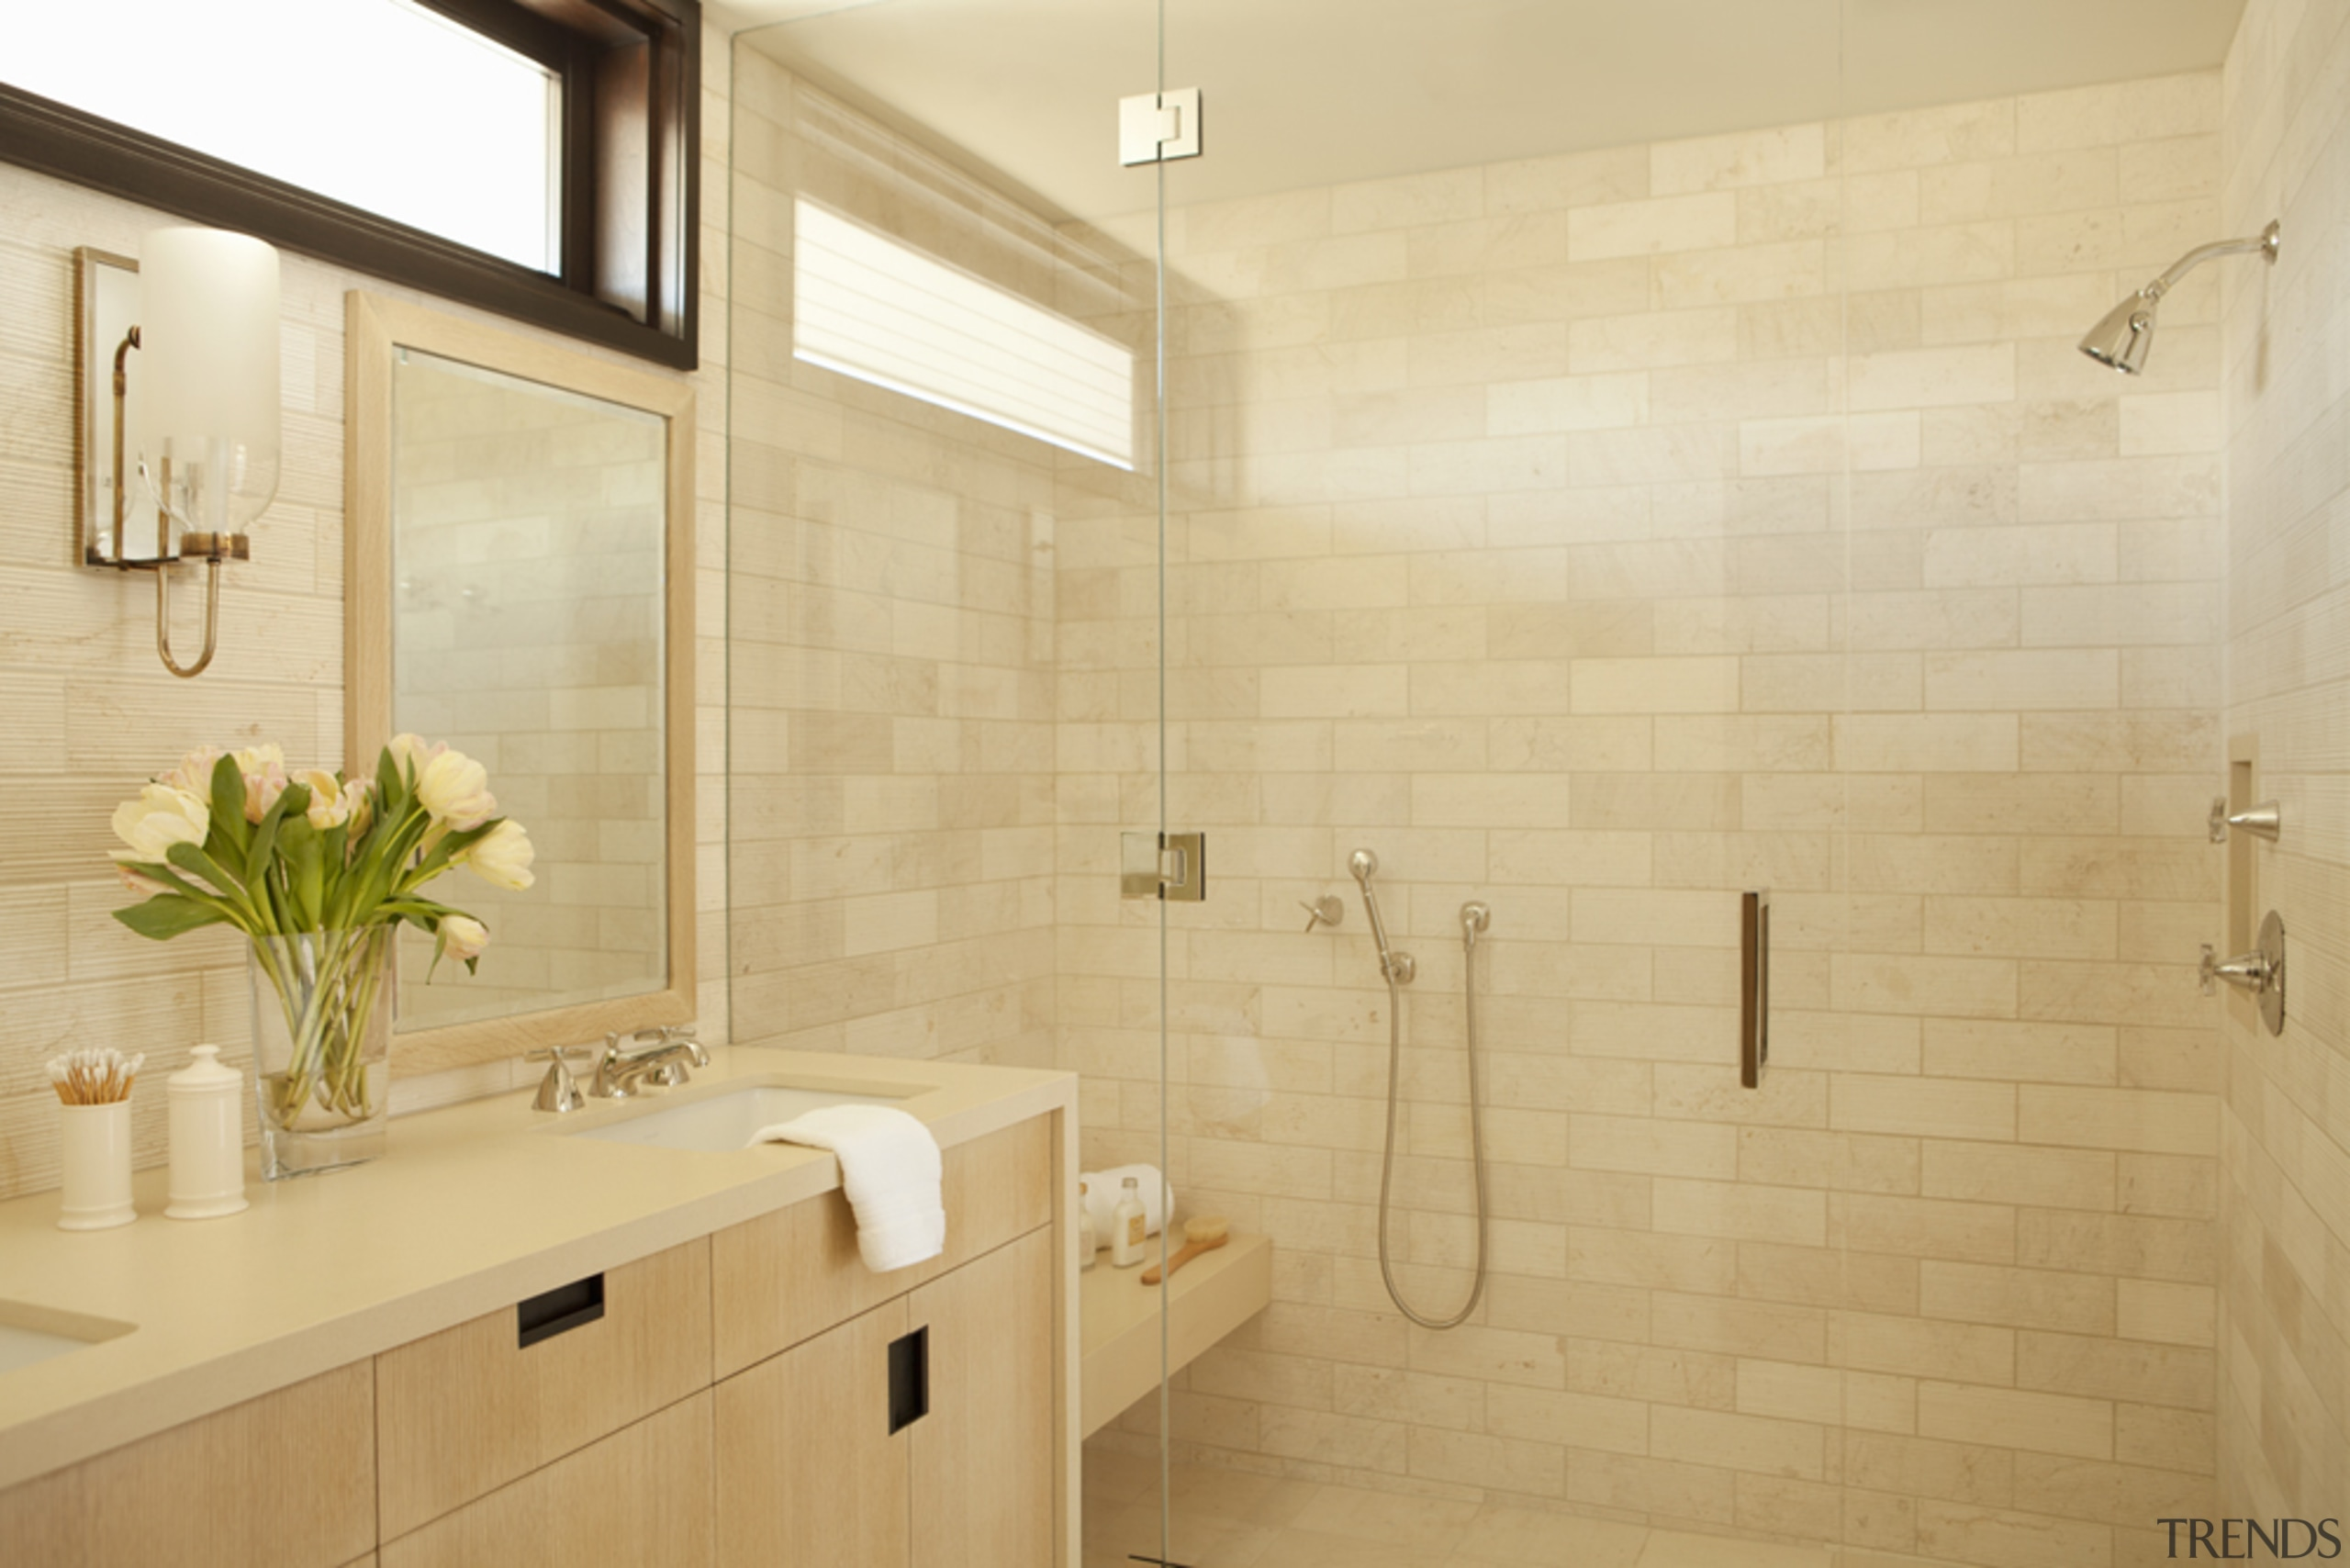 Even the guest suite bathroom evokes a sunny,